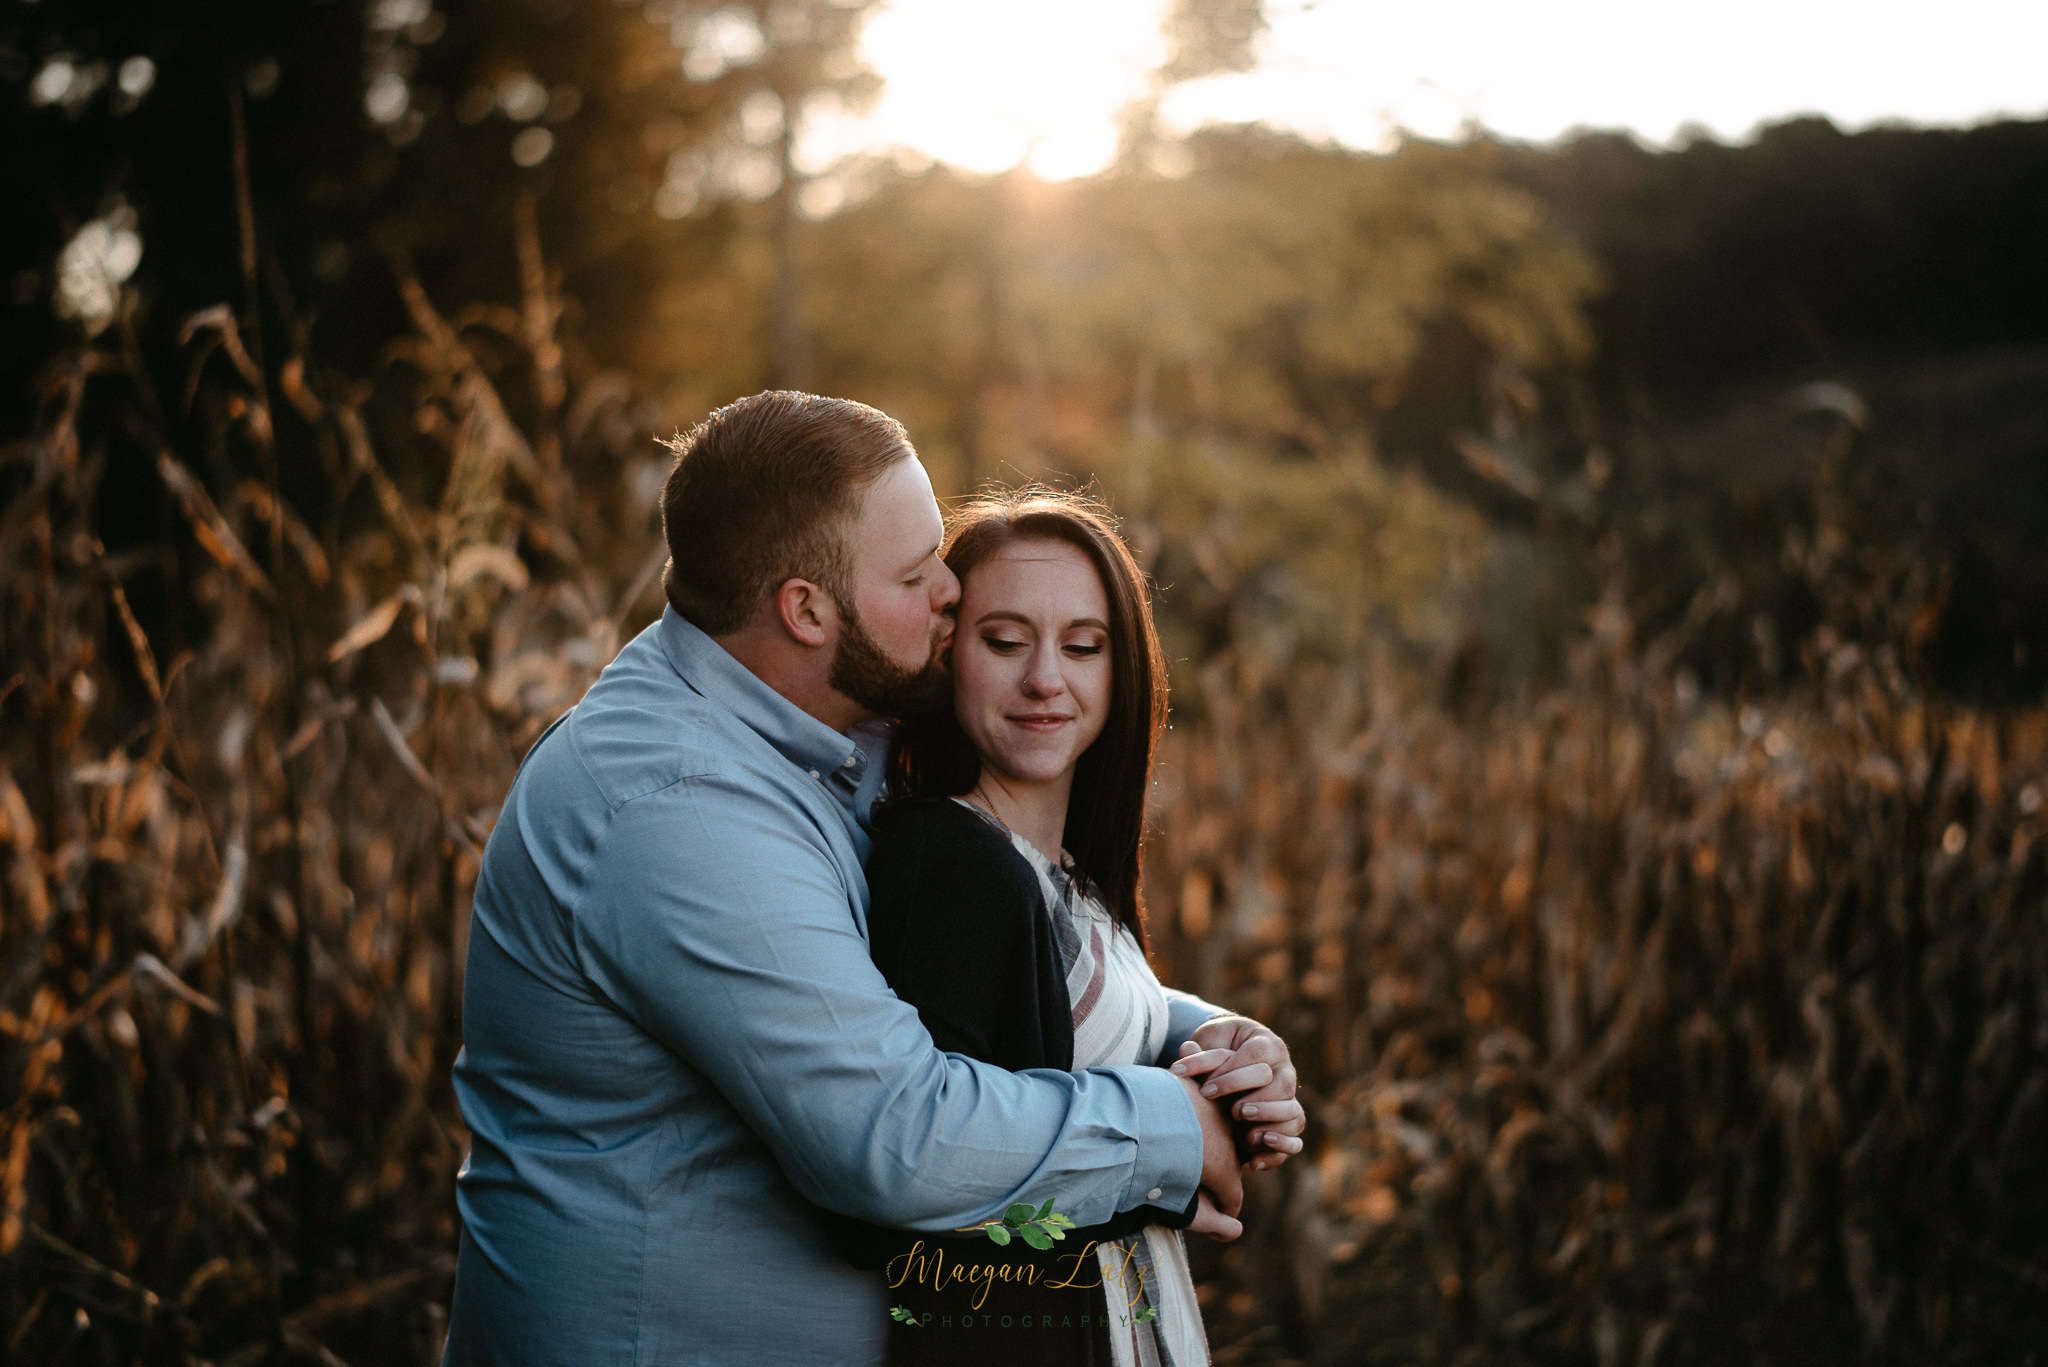 Poconos-NEPA-Wedding-Engagement-Photographer-session-at-Blue-Ridge-Estate-Vineyard-Winery-15.jpg